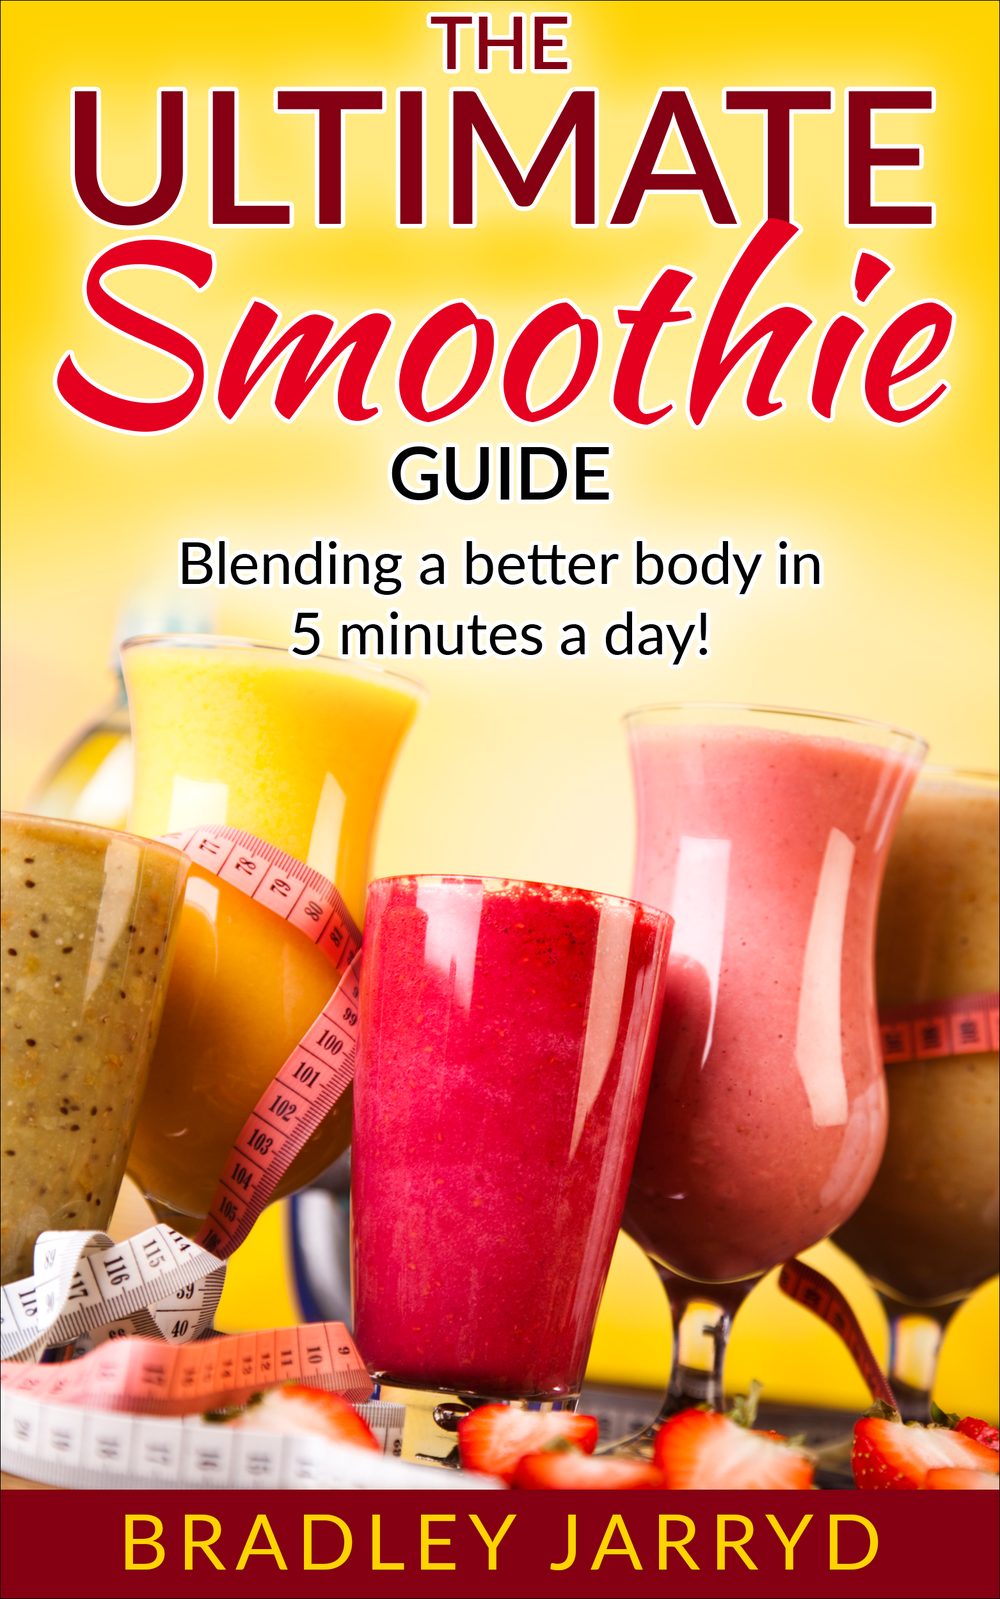 The Ultimate Bradass Smoothie Guide_html_m2f6d0b20.png